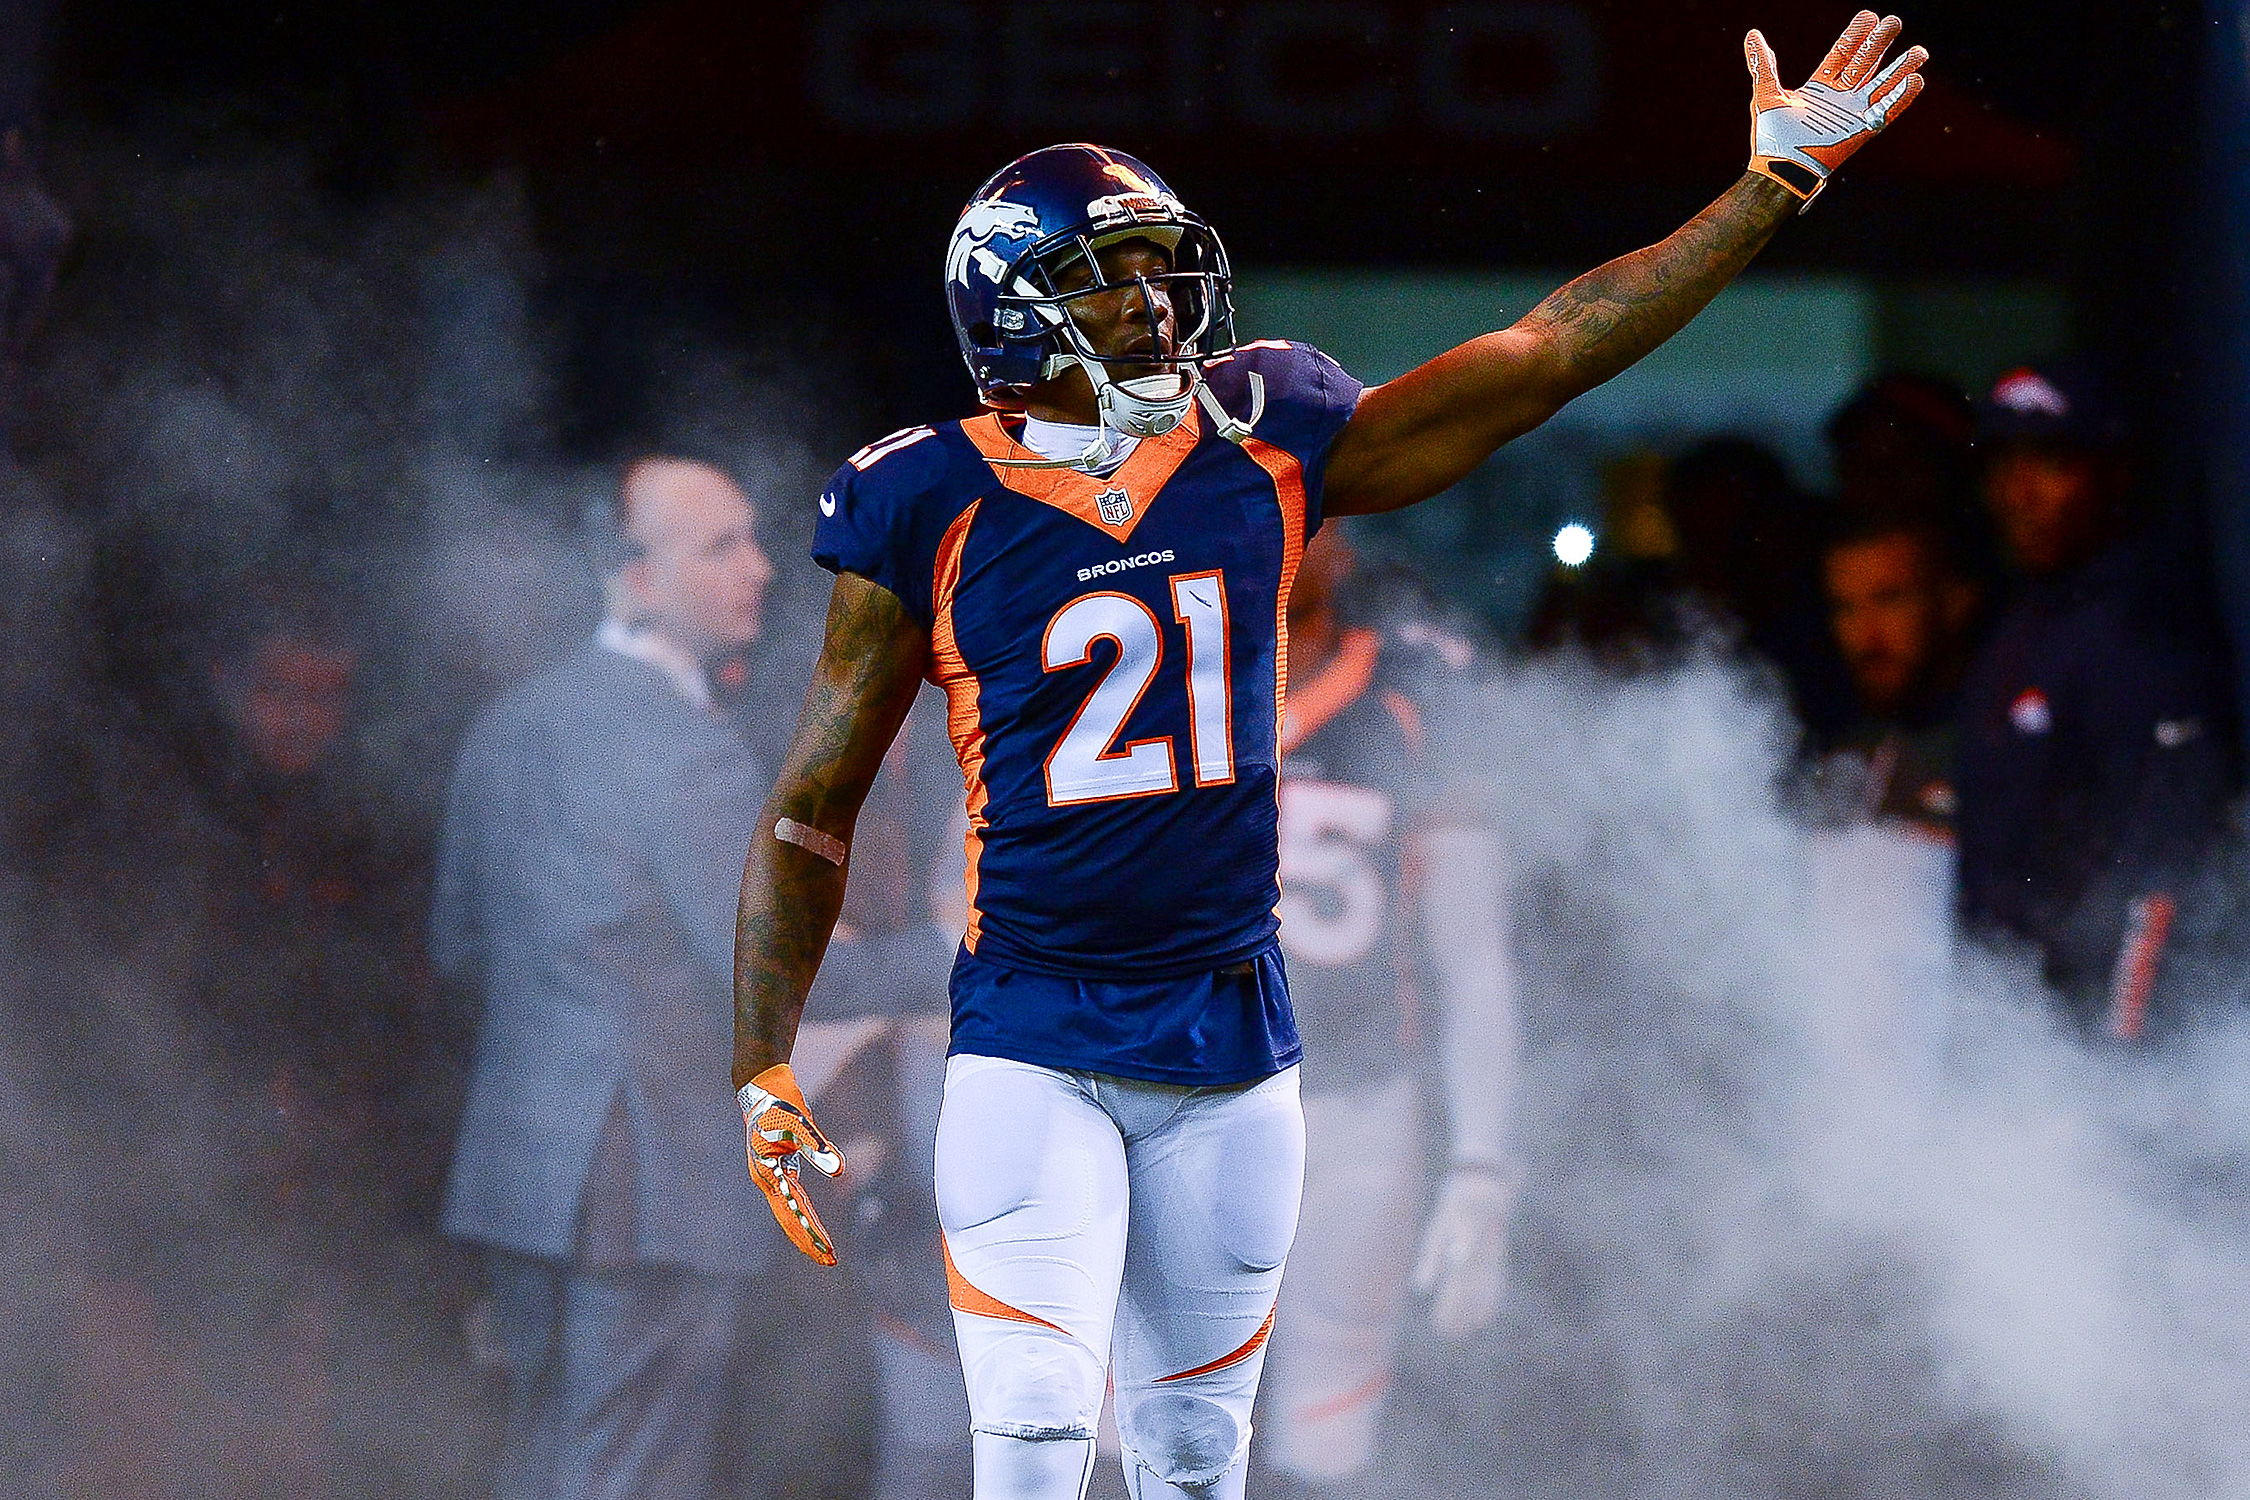 The flashy, confrontational complement to Chris Harris Jr.'s technical dominance on the perimeter, Talib has 11 passes defensed, 20 tackles and three interceptions in his first eight games.